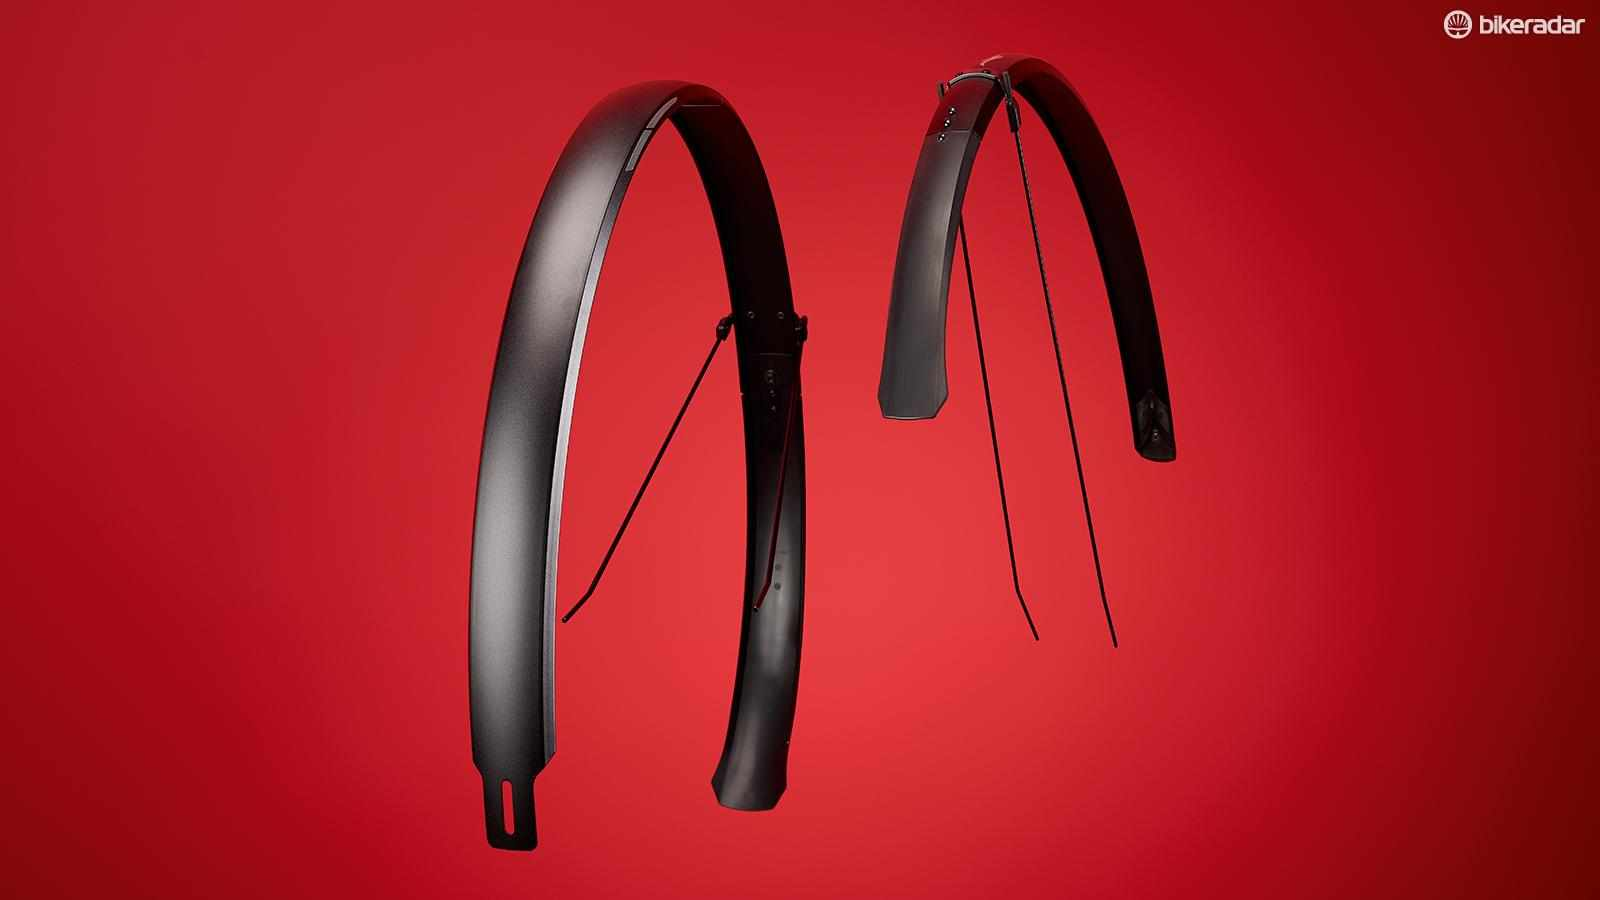 These are fairly heavyweight, sturdy mudguards and their wide body ensures excellent rigidity